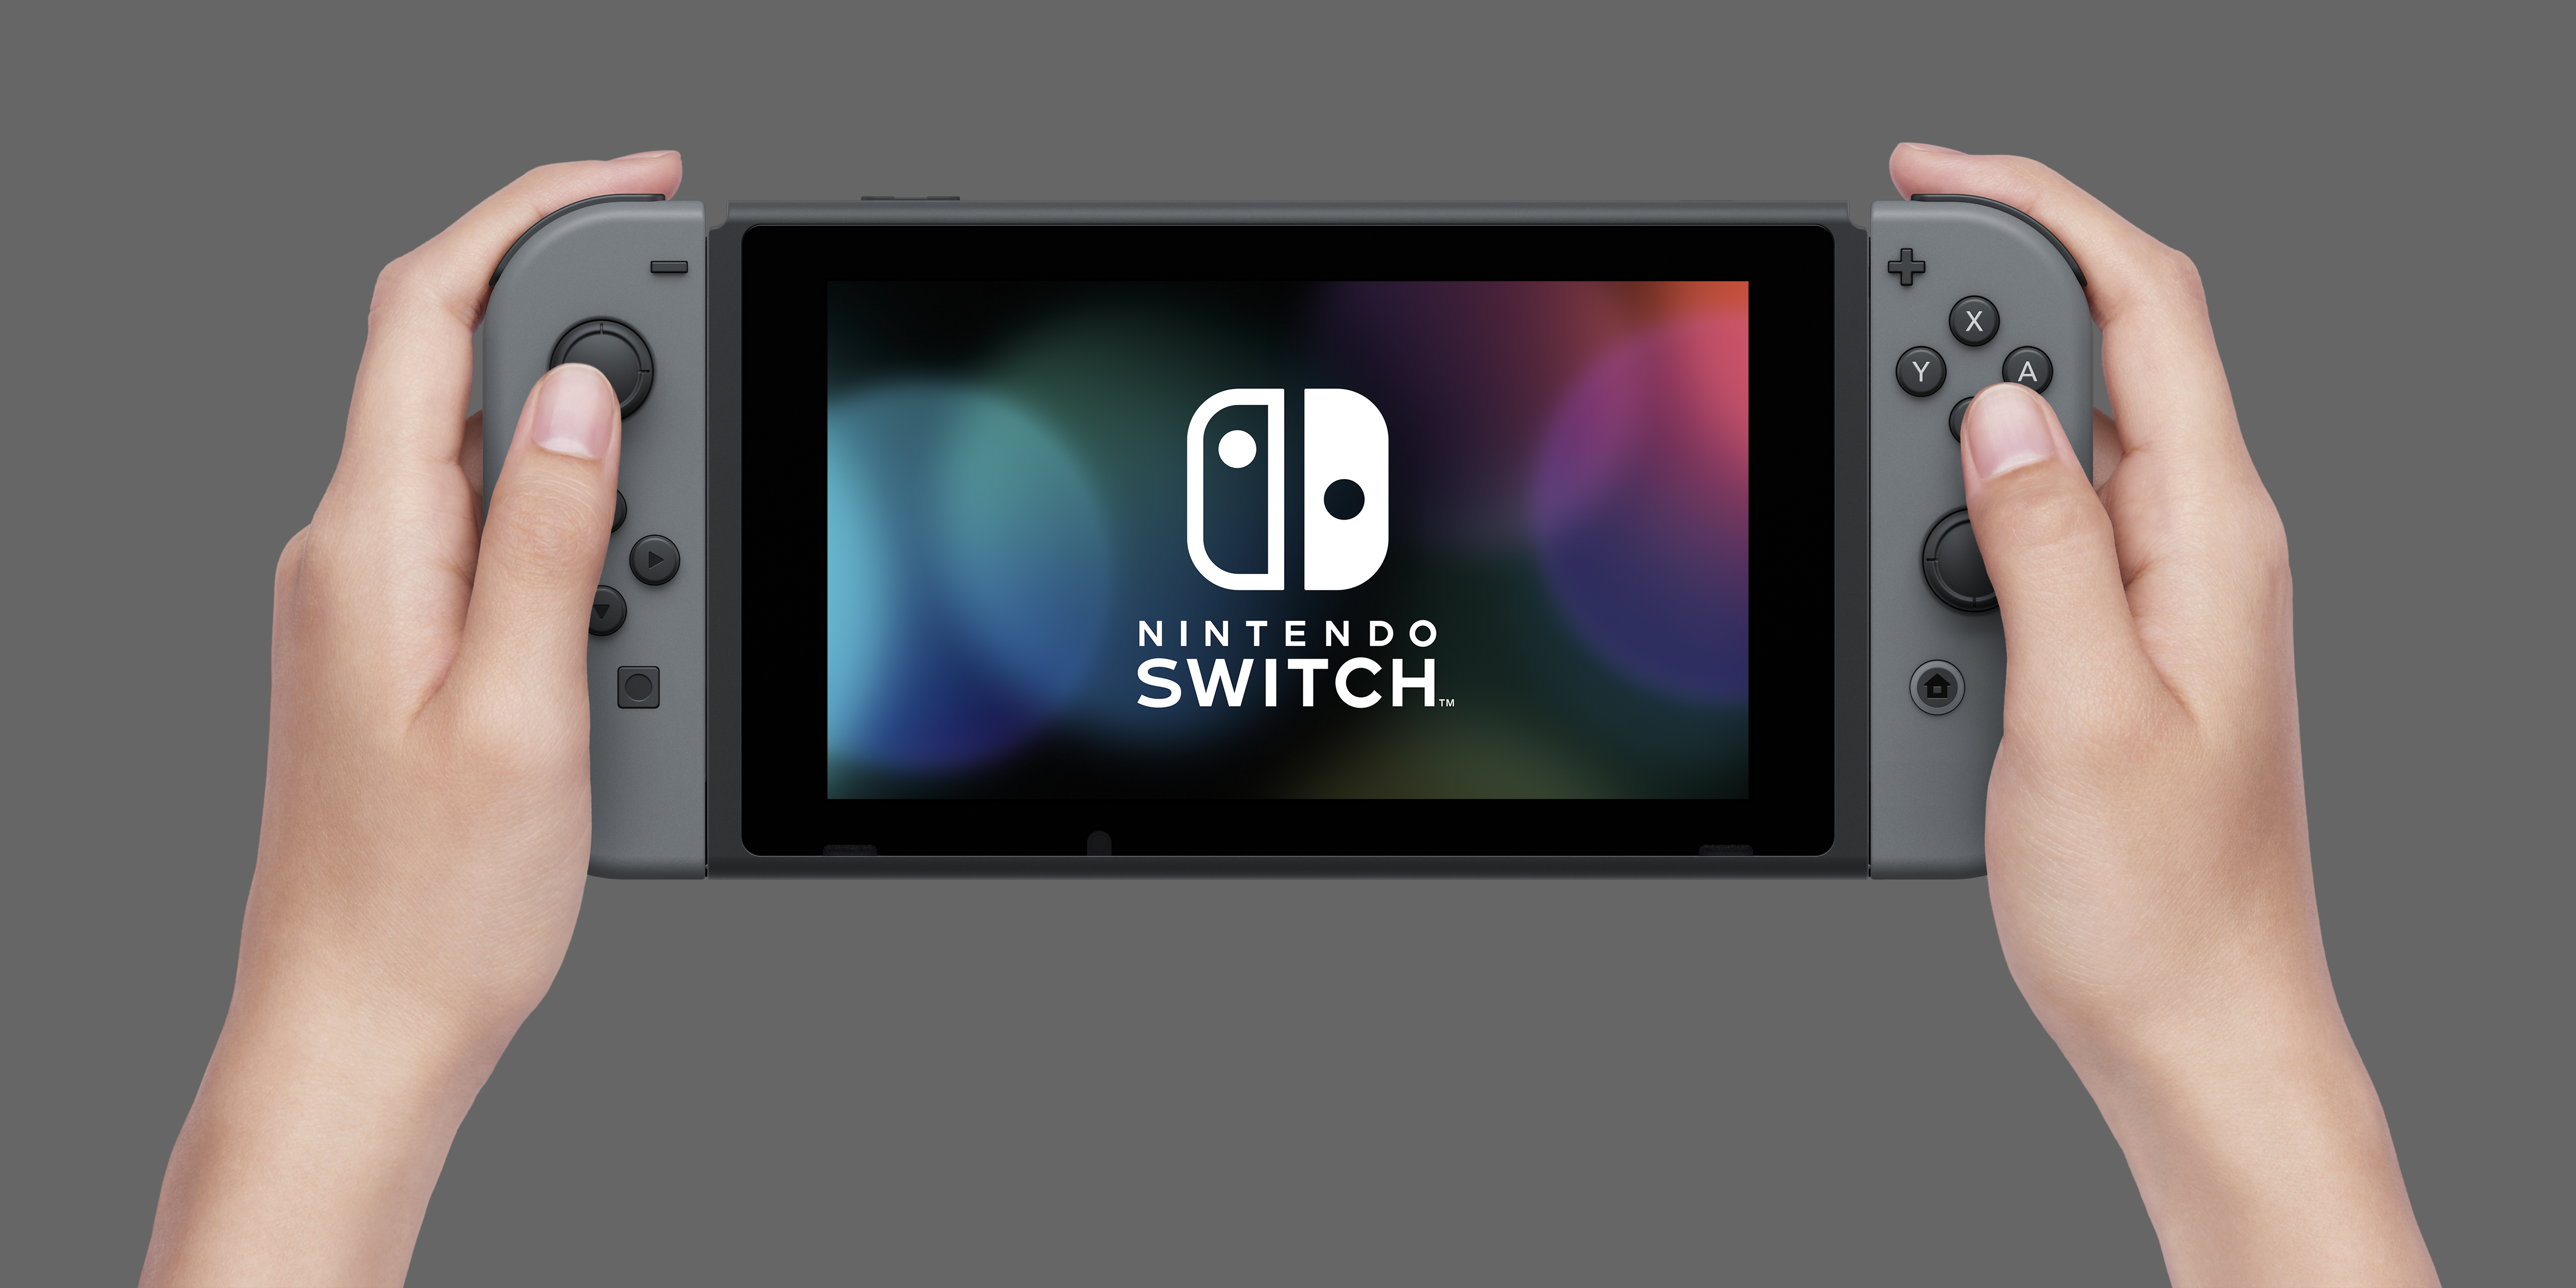 Nintendo Switch's infuriating data management almost ruins the experience